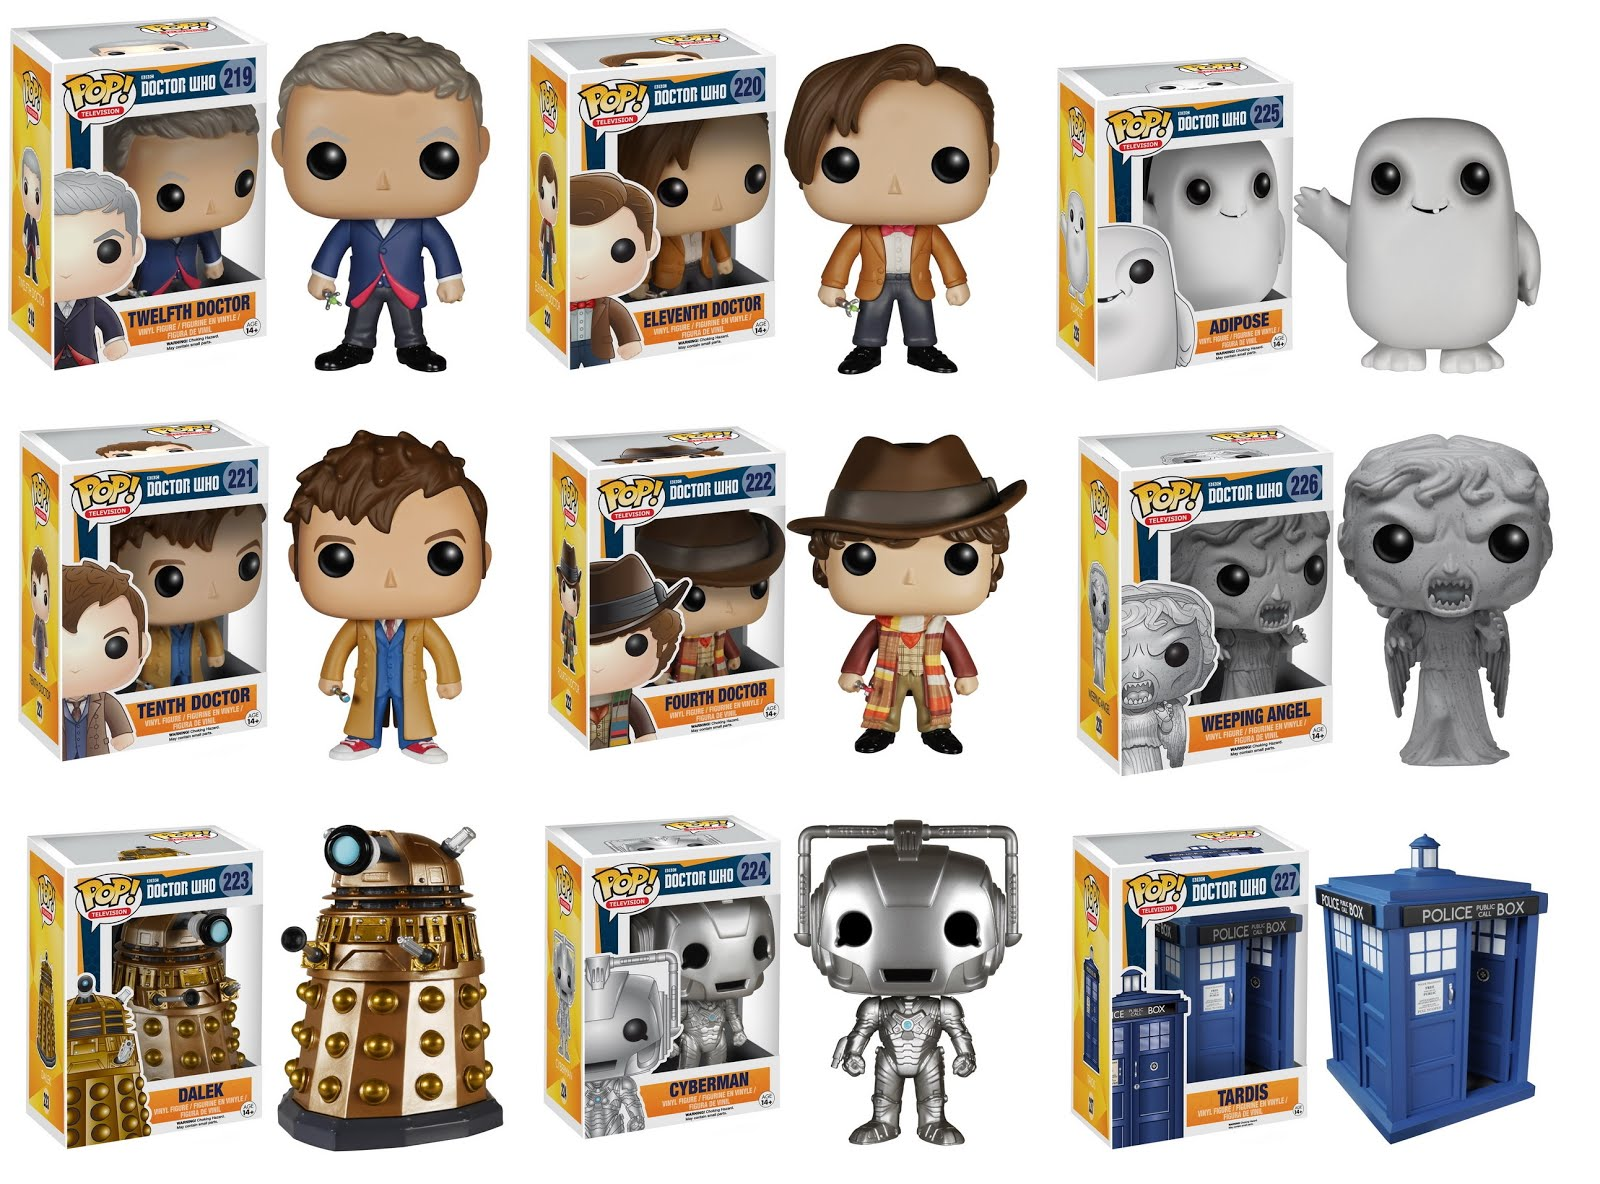 Doctor Who Pop Vinyl Figures